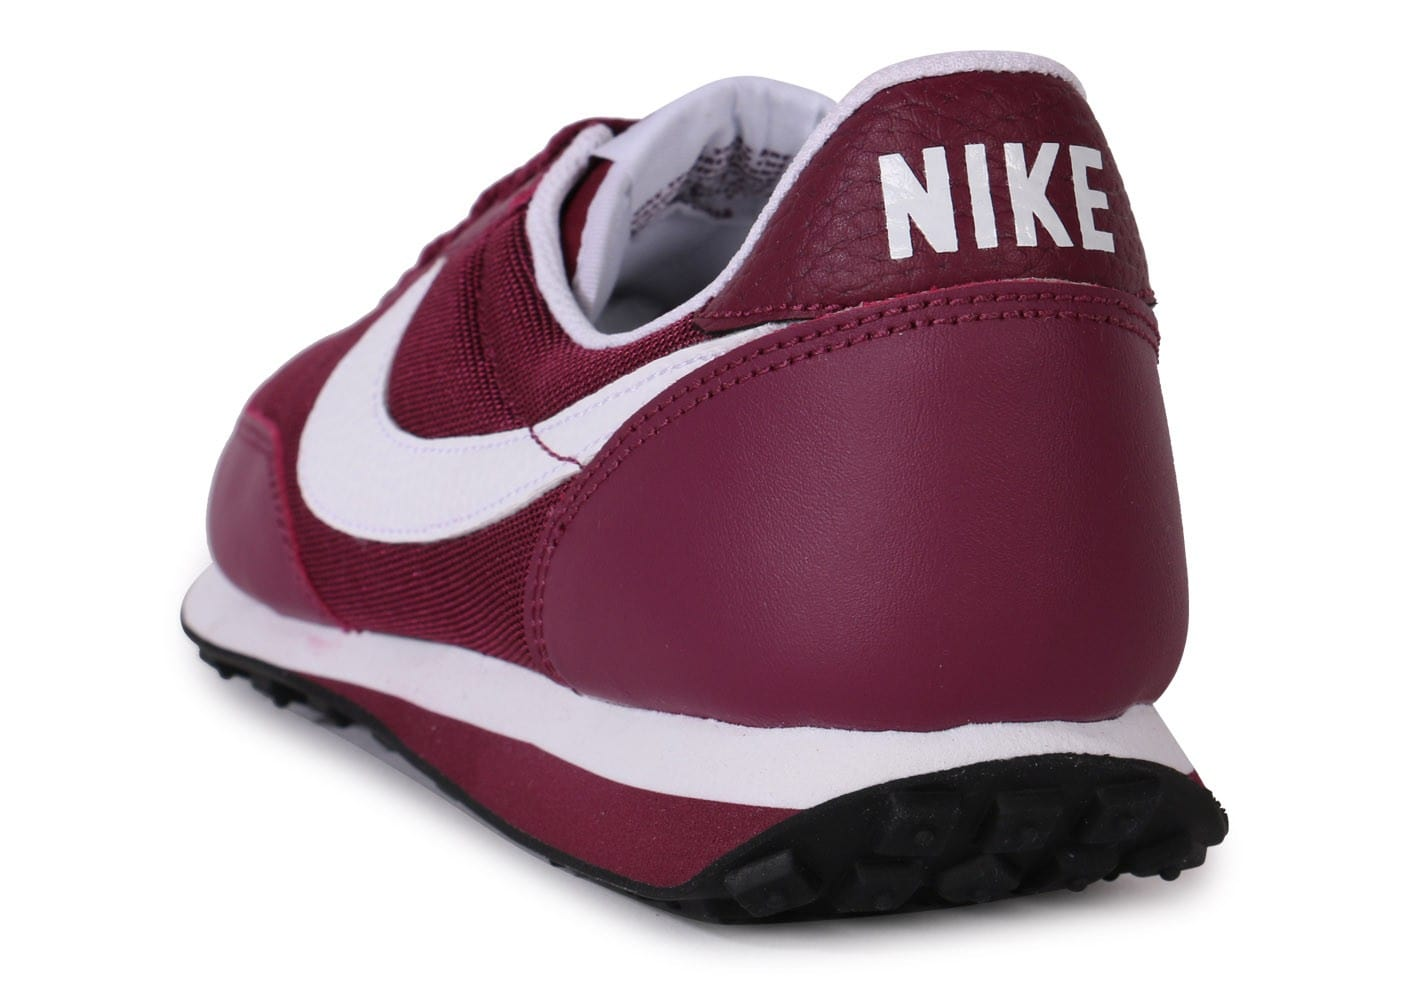 Chaussures Chaussures Bordeaux Chaussures Nike Bordeaux Bordeaux Nike Nike CtQrdsh